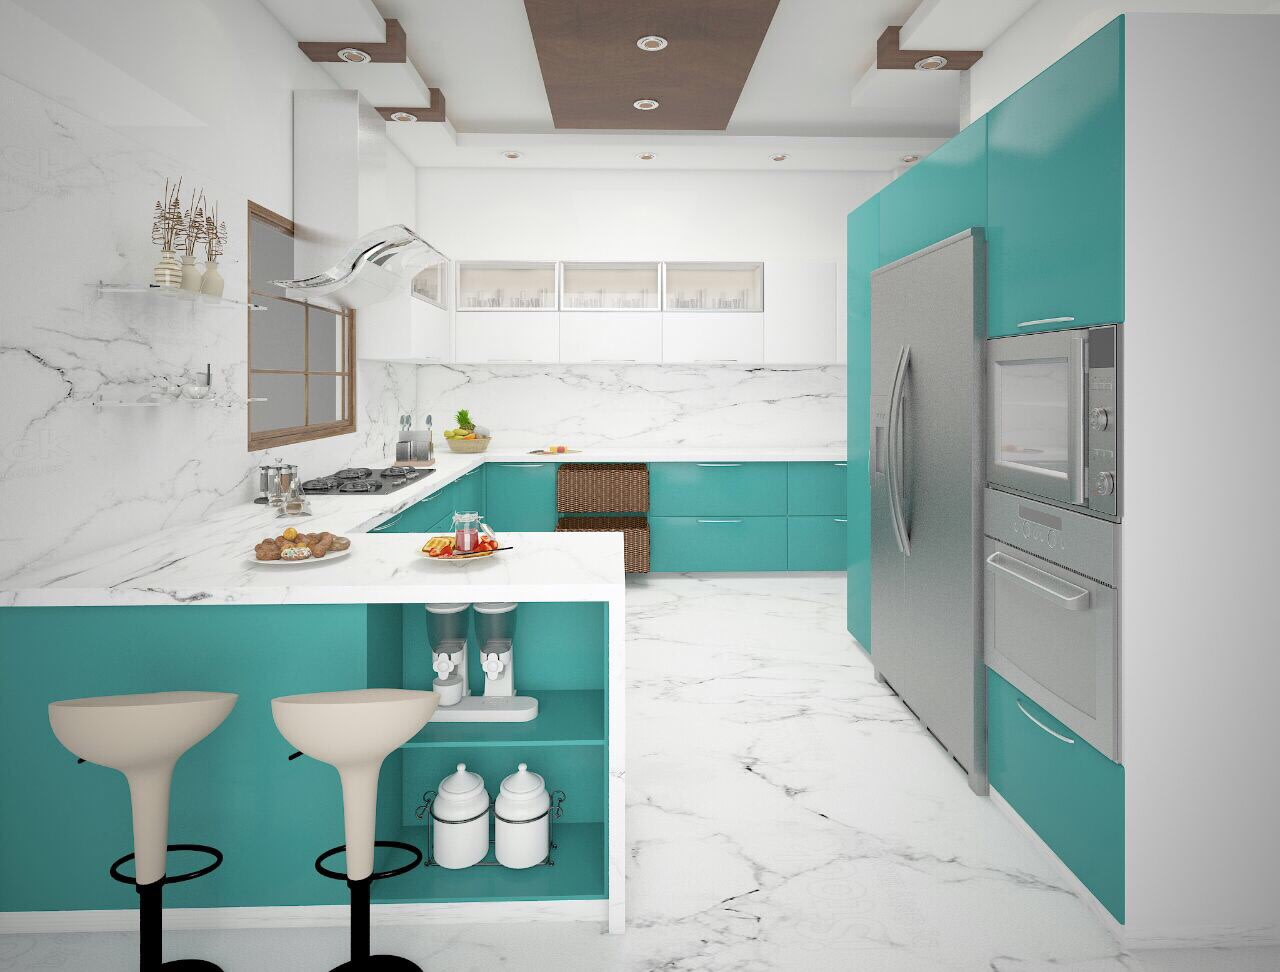 U Shaped Kitchen With Marble Flooring by nakul baghel Modular-kitchen Modern | Interior Design Photos & Ideas